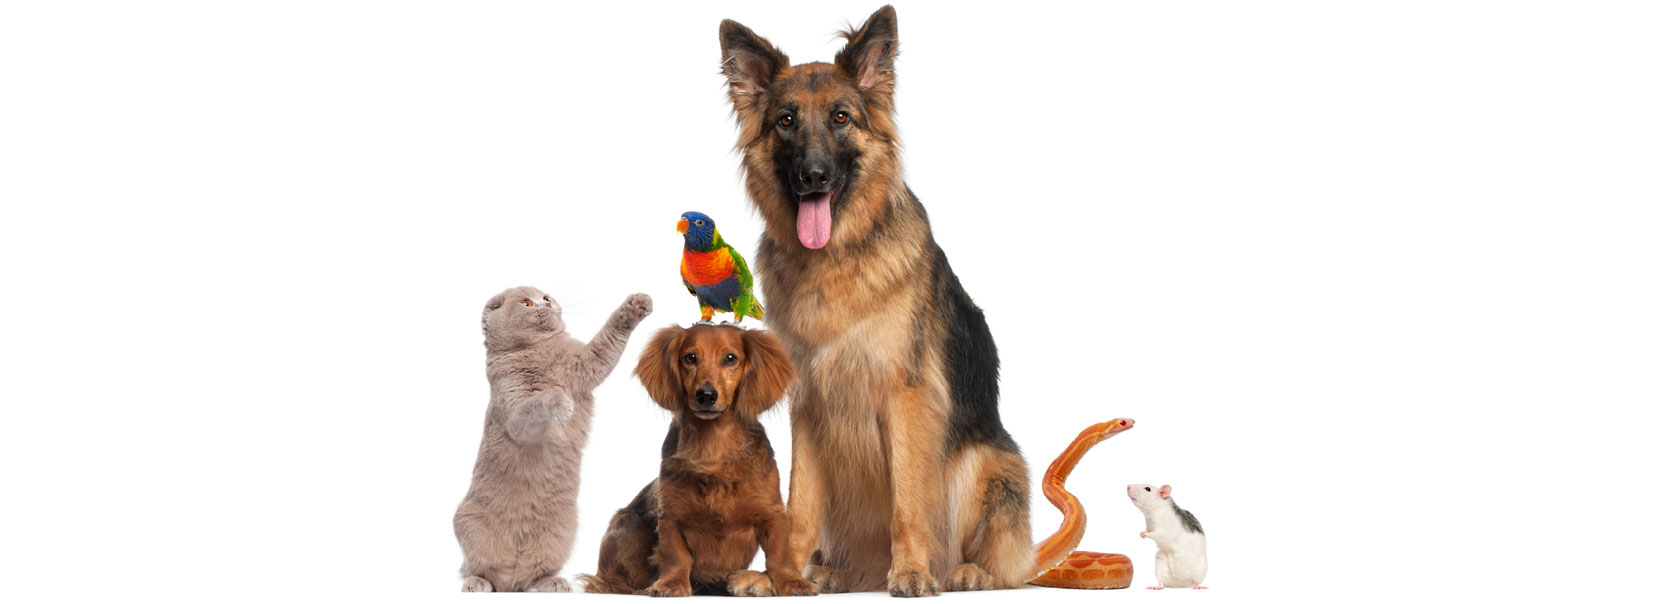 Online Pet Shops for Buy-Sell Birds Dogs Puppies Rabbit ...